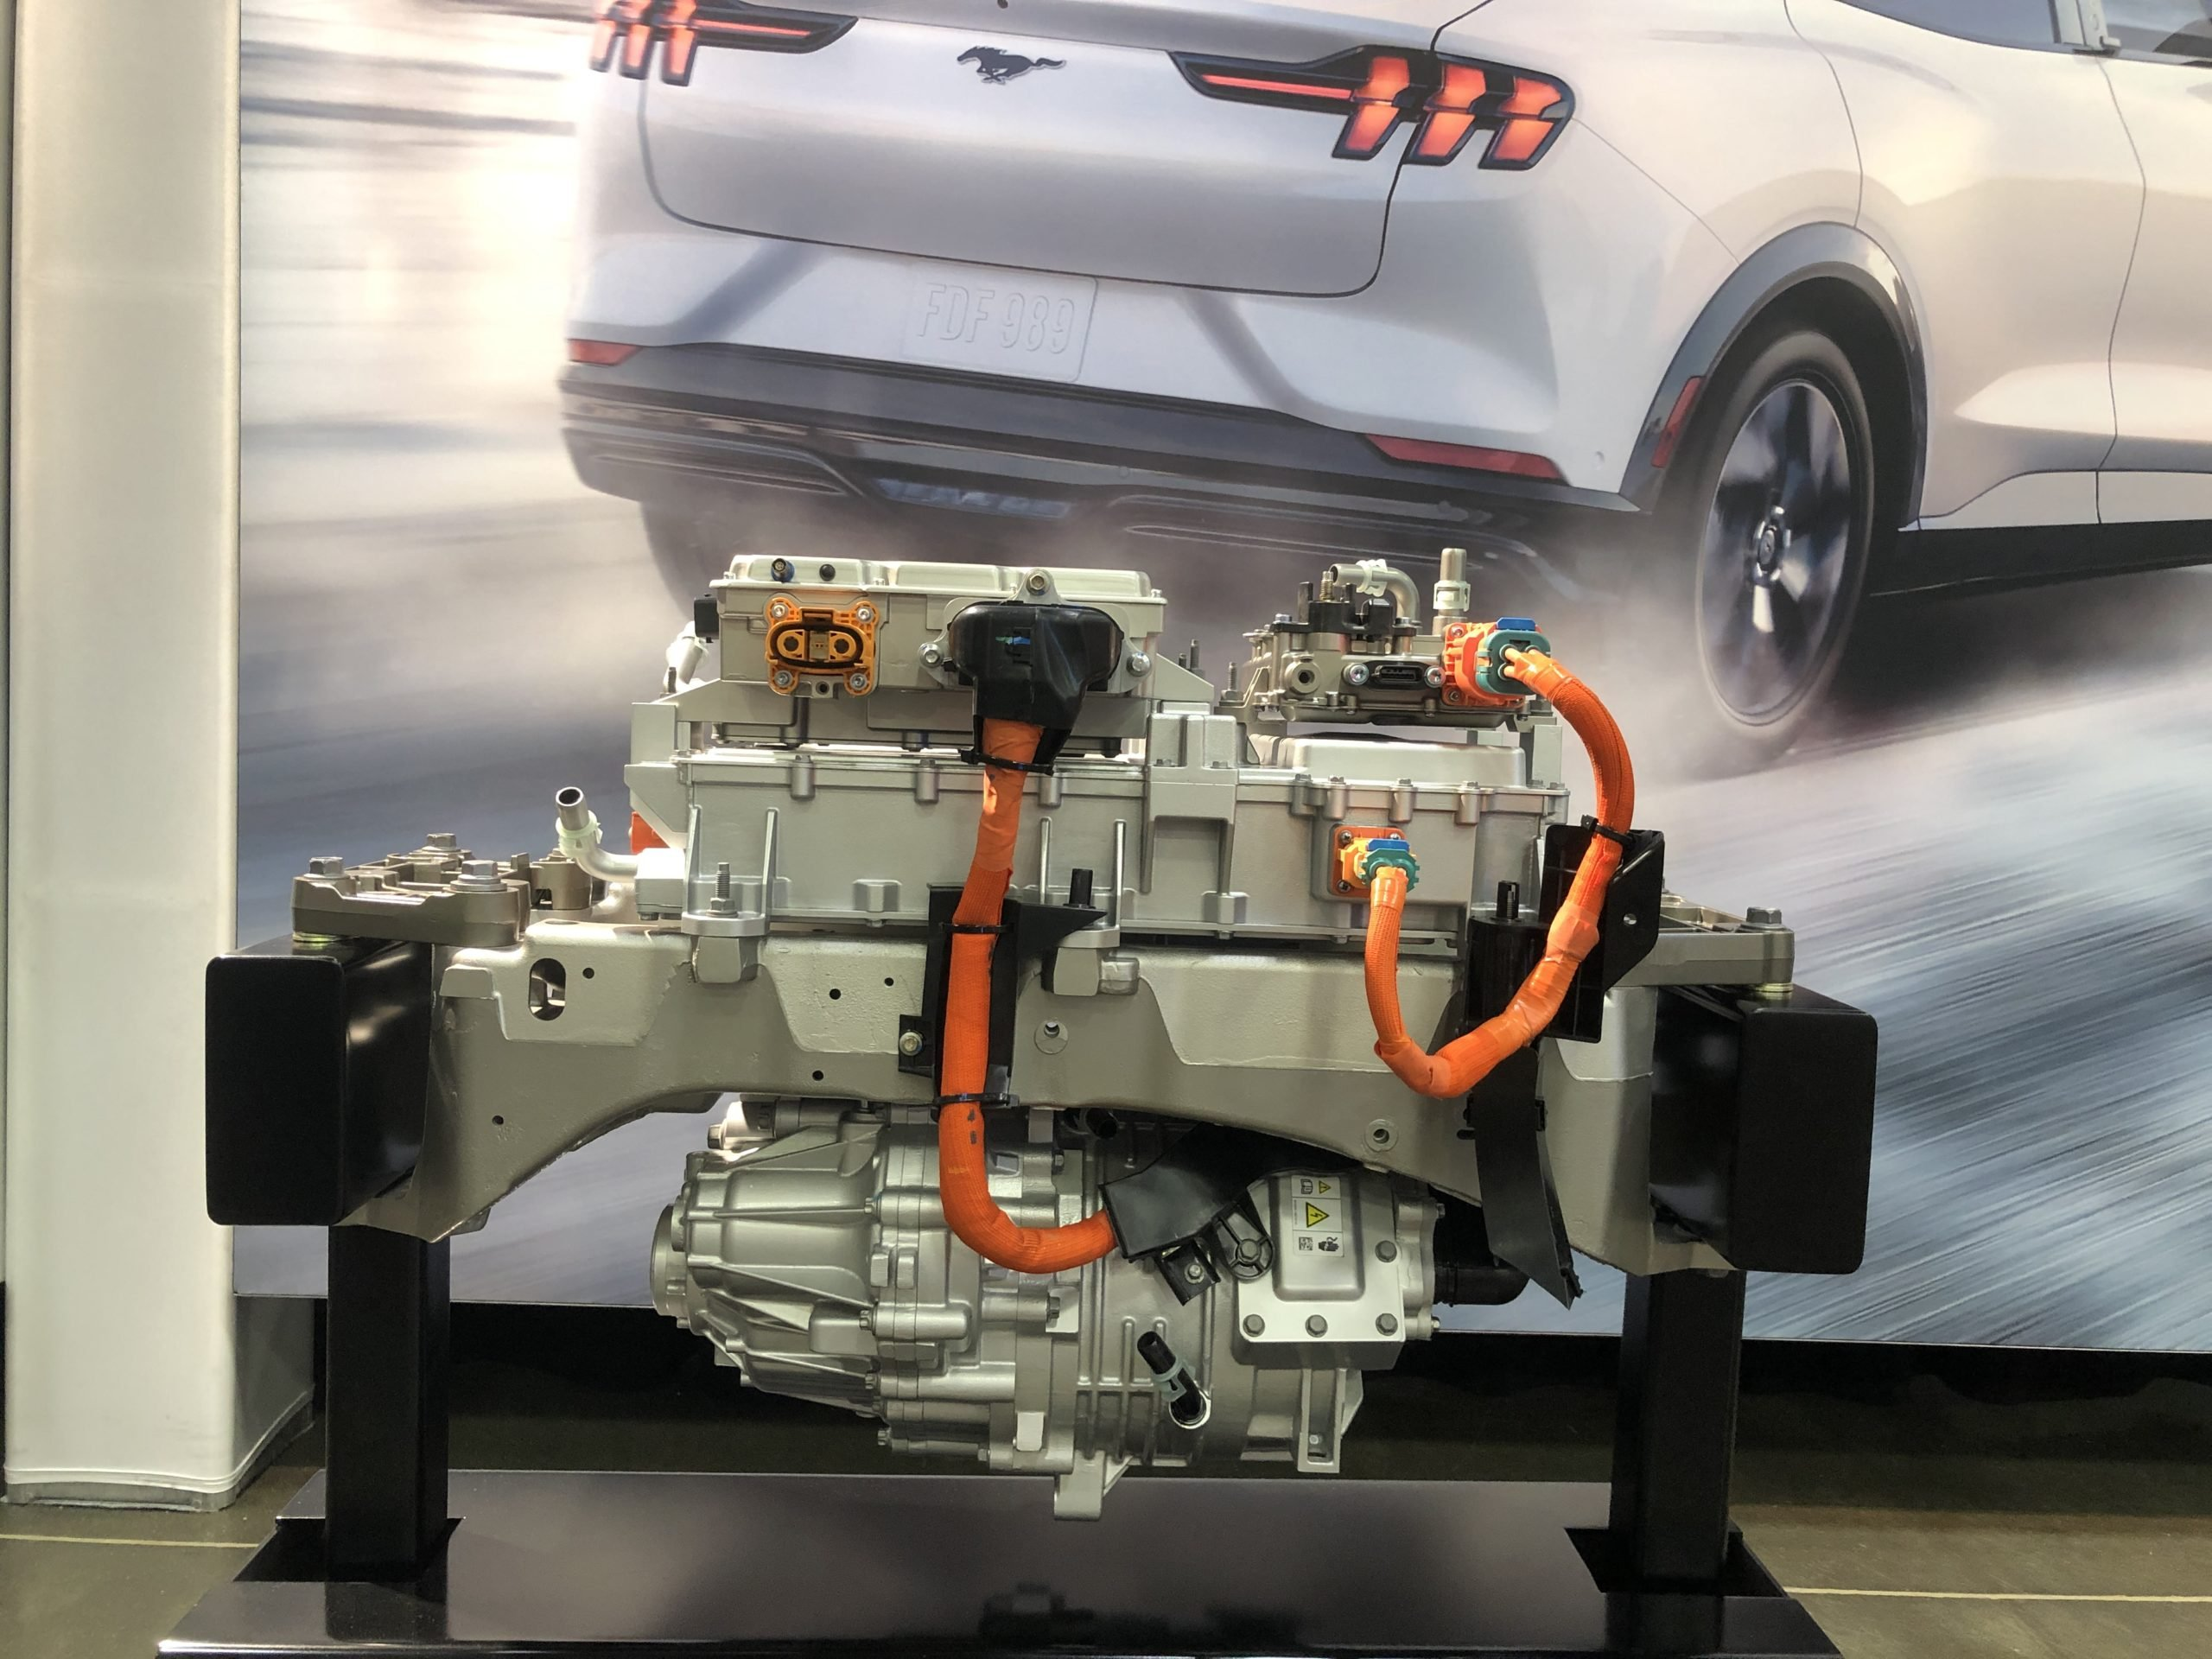 Ford recently conducts a battery test on the Mustang Mach and discovers that the battery charges 30 percent faster than expected.